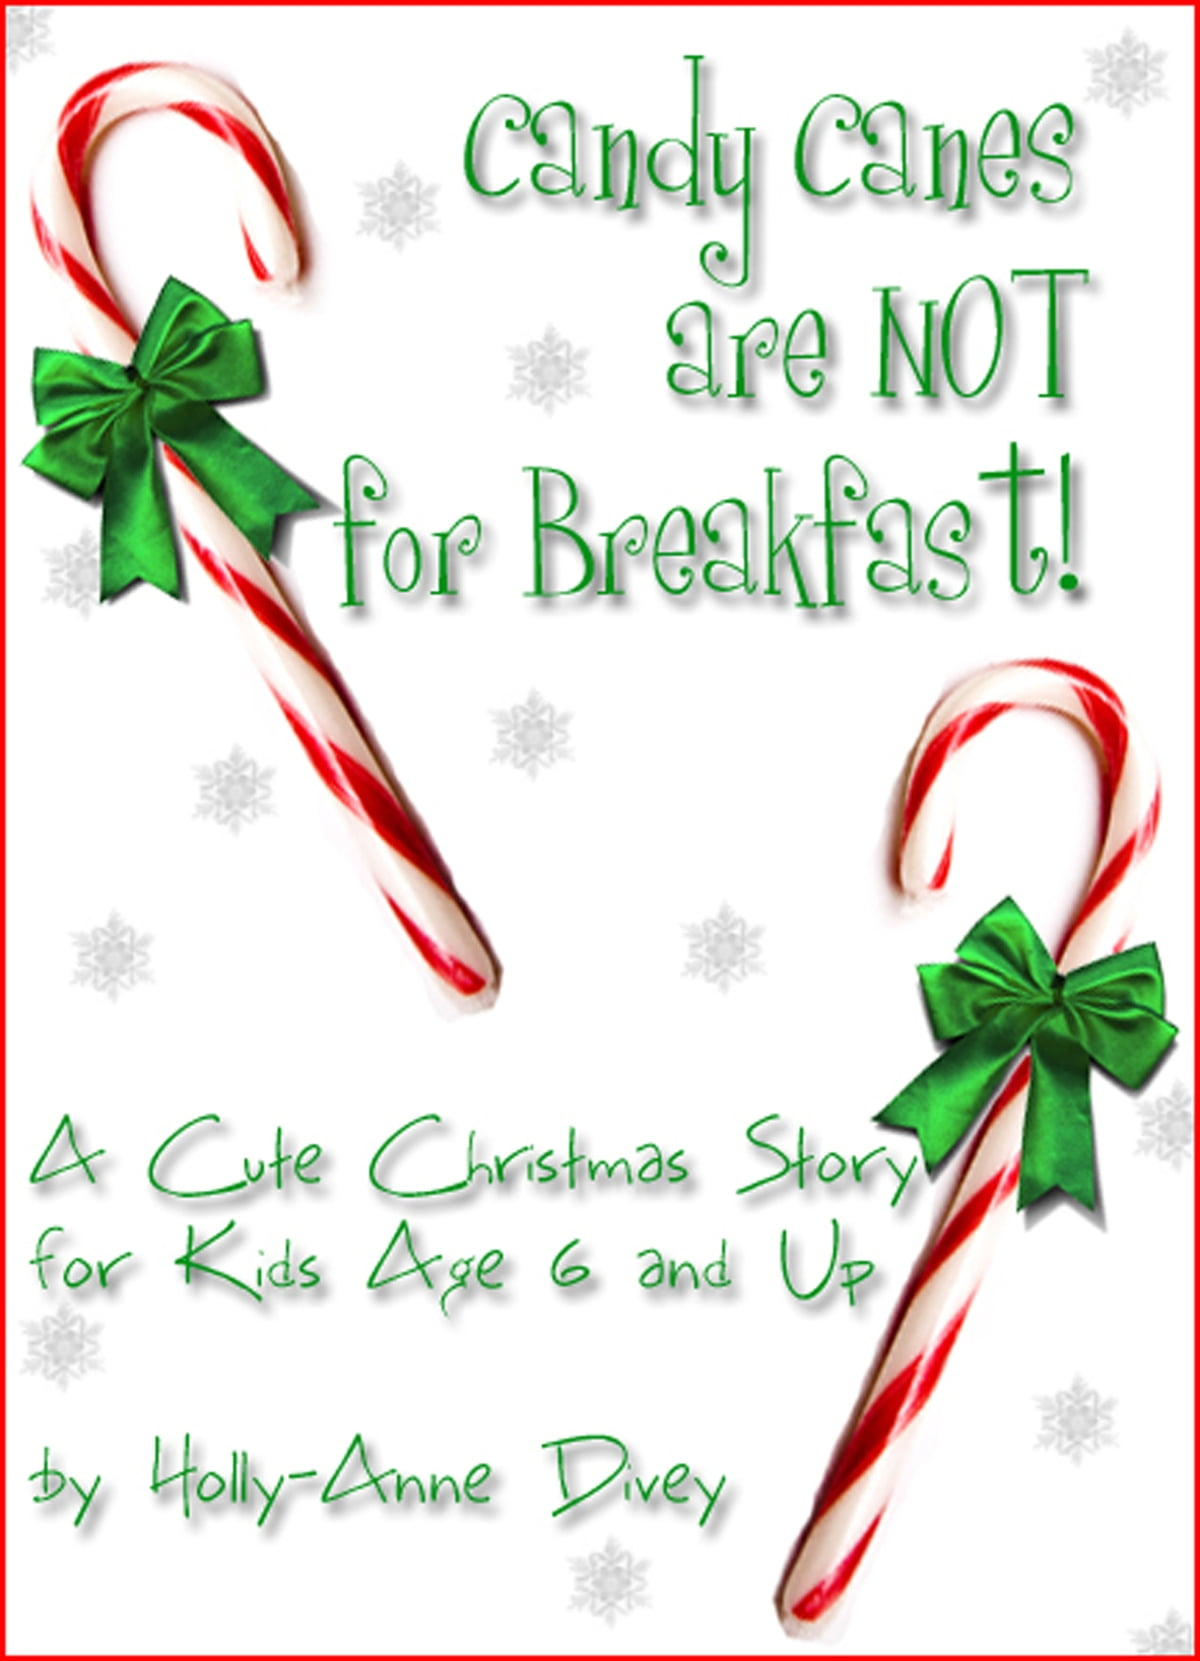 Christmas Story For Kids.Candy Canes Are Not For Breakfast A Cute Christmas Story For Kids Age 6 Up Ebook By Holly Anne Divey Rakuten Kobo